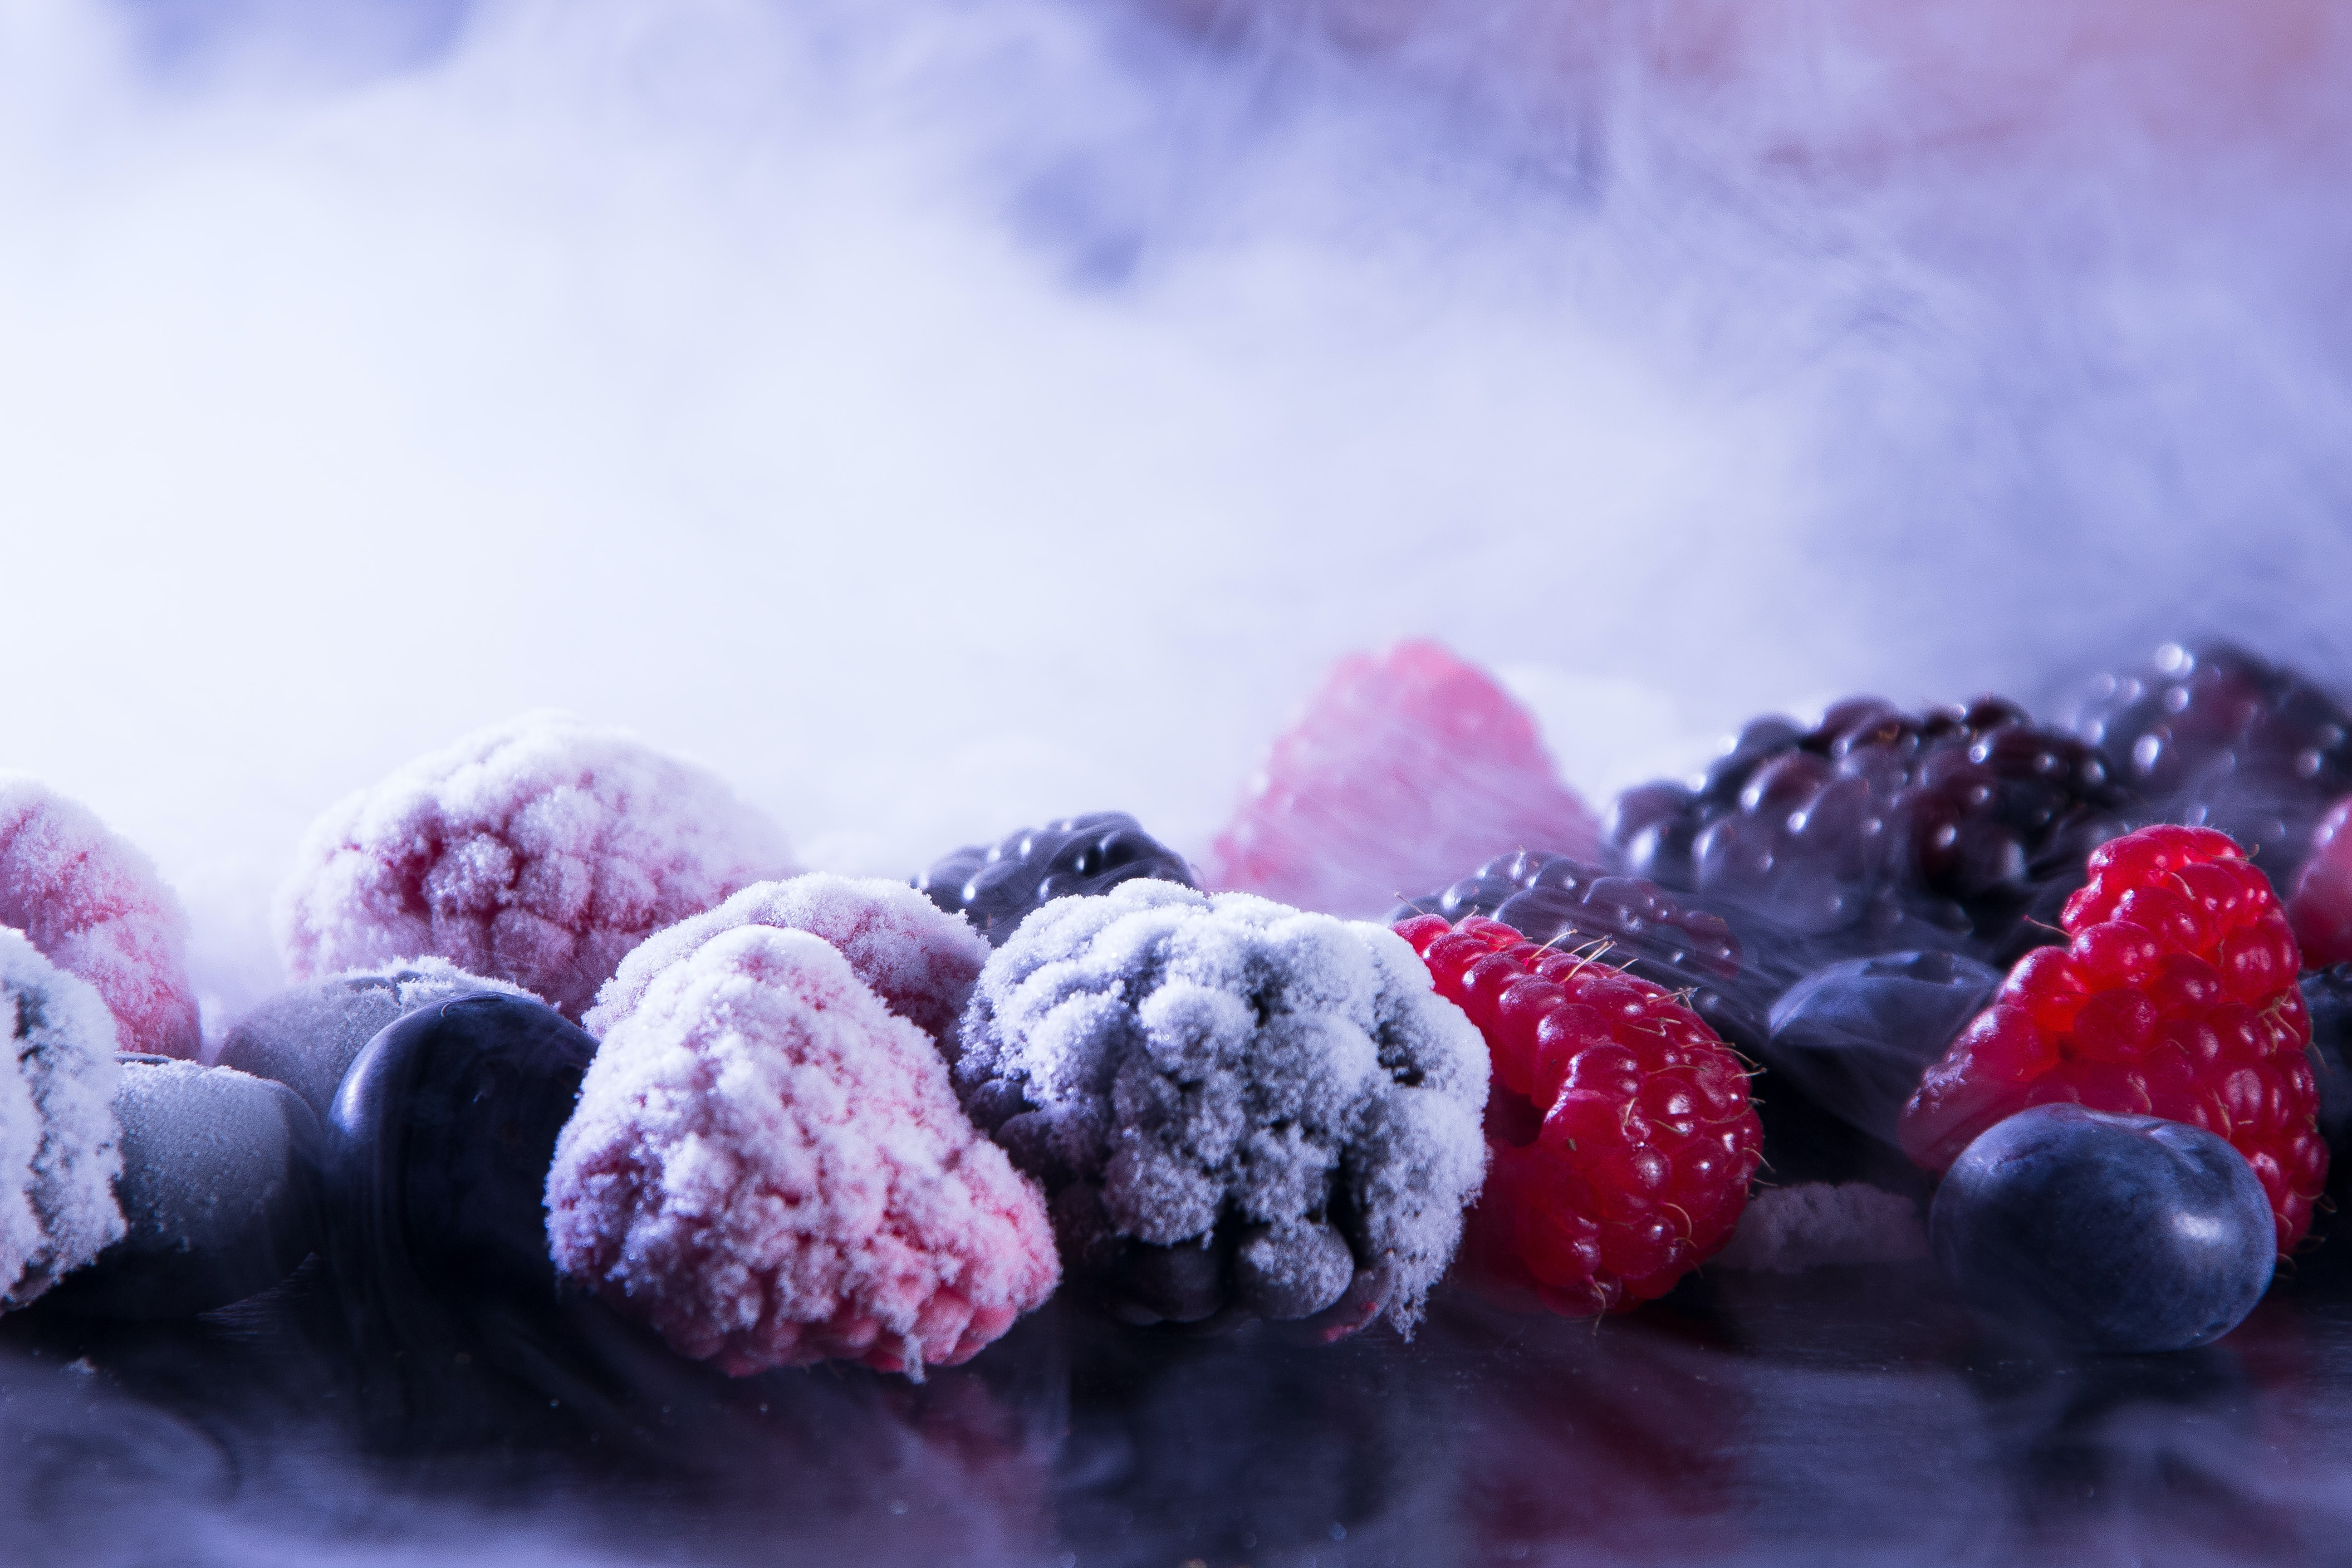 Frozen blackberries, blueberries, and raspberries